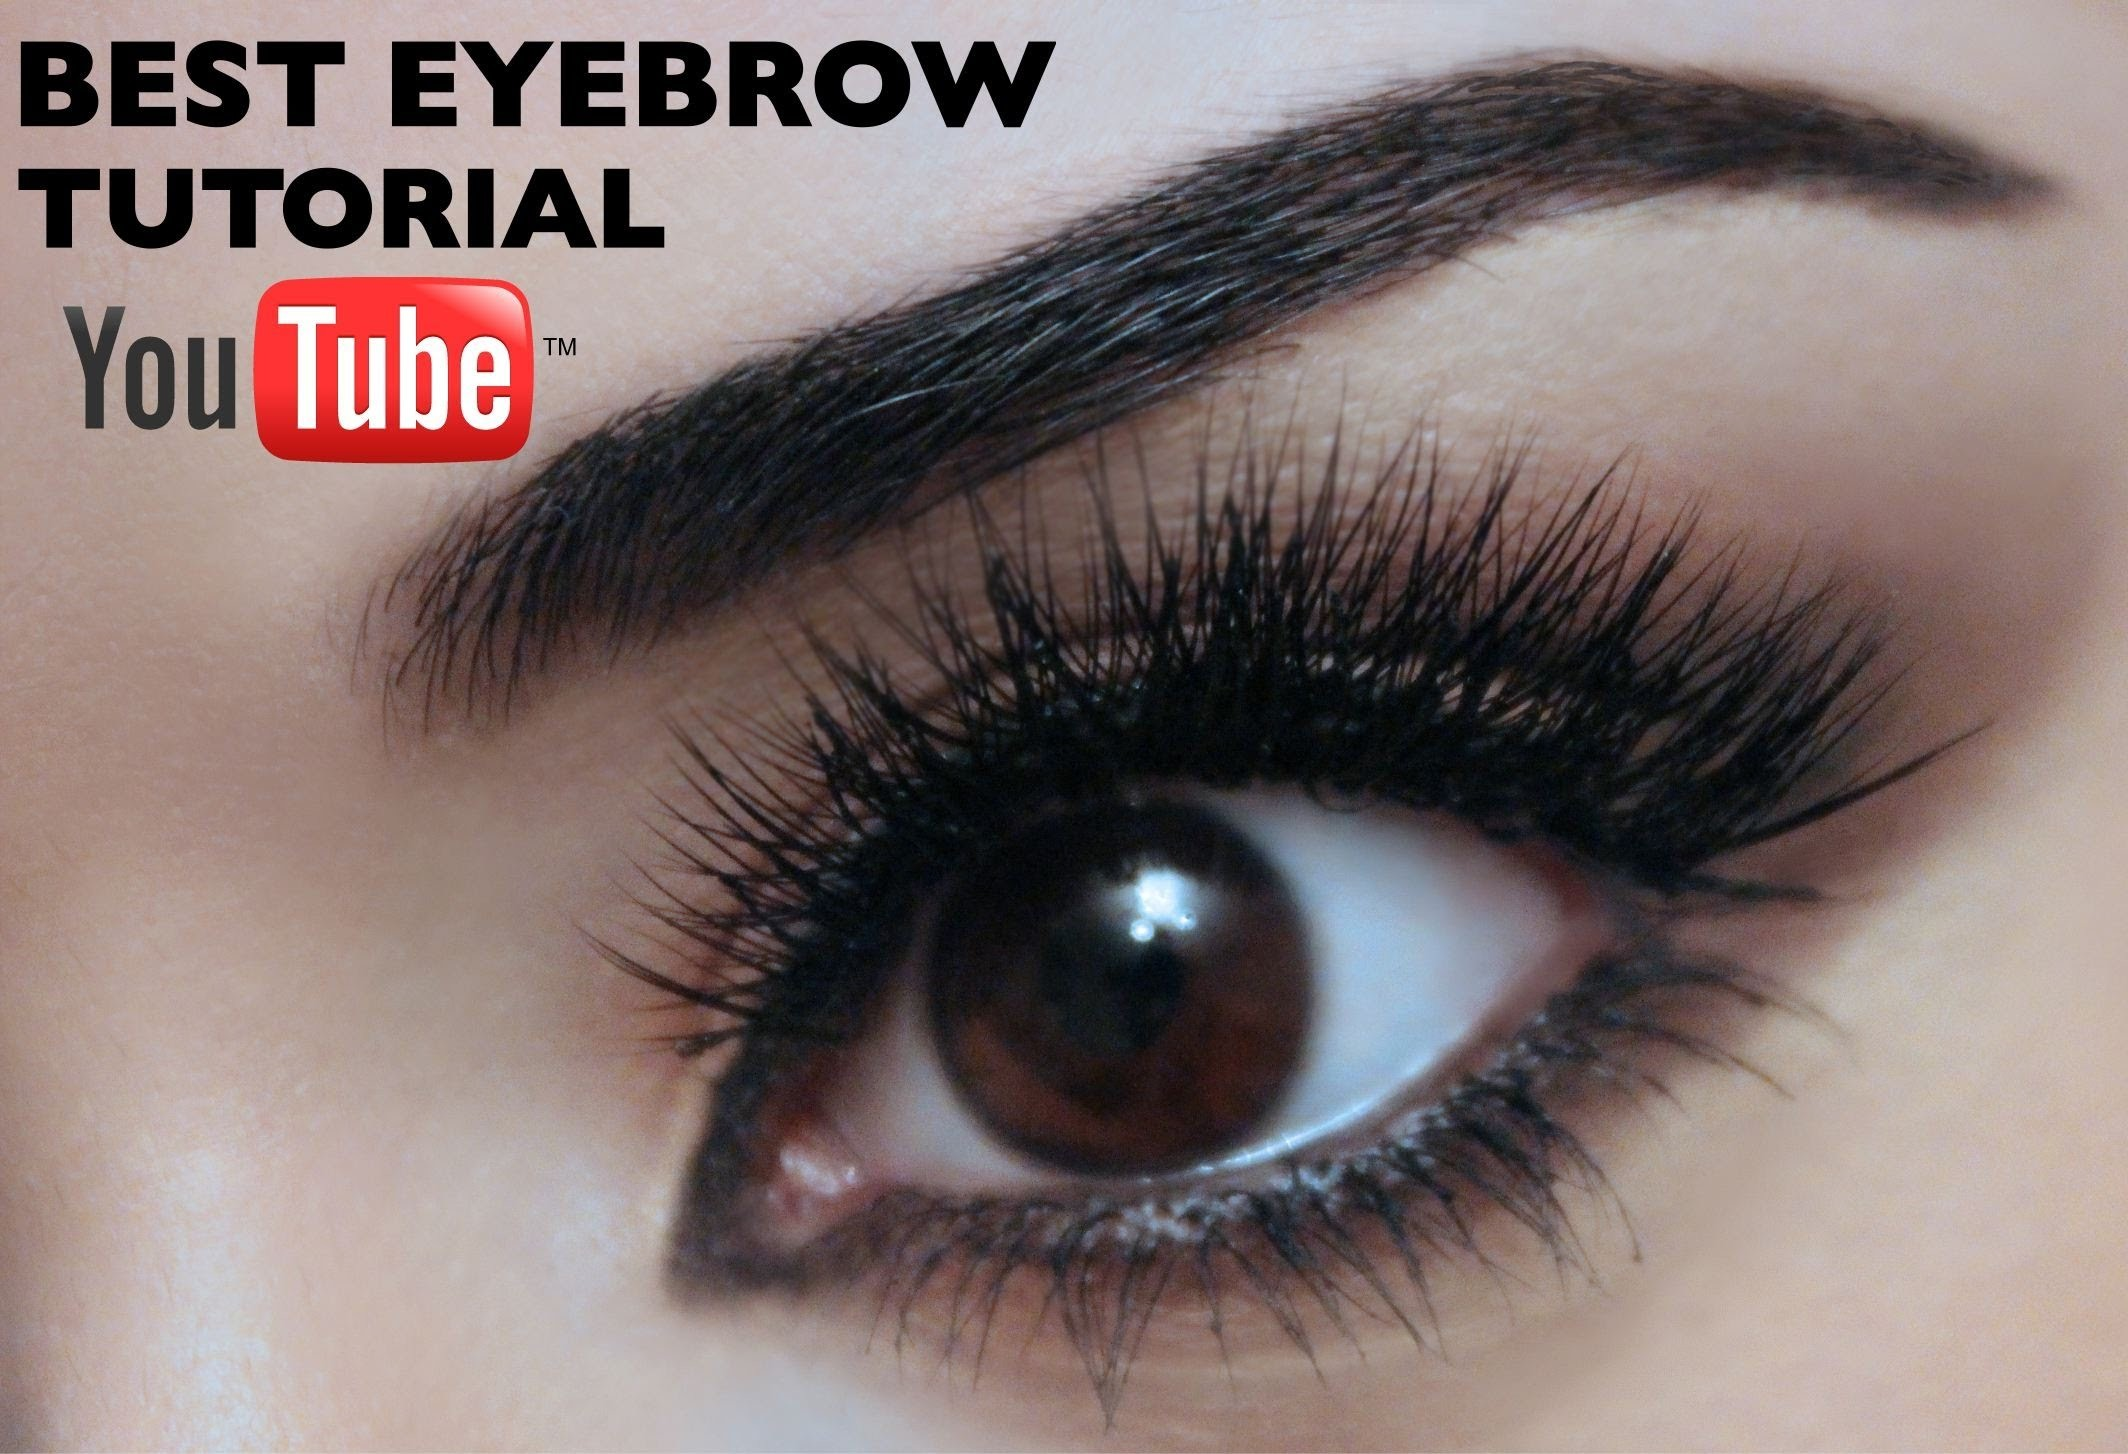 Best Eyebrow Tutorial On YouTube As Voted By YOU!